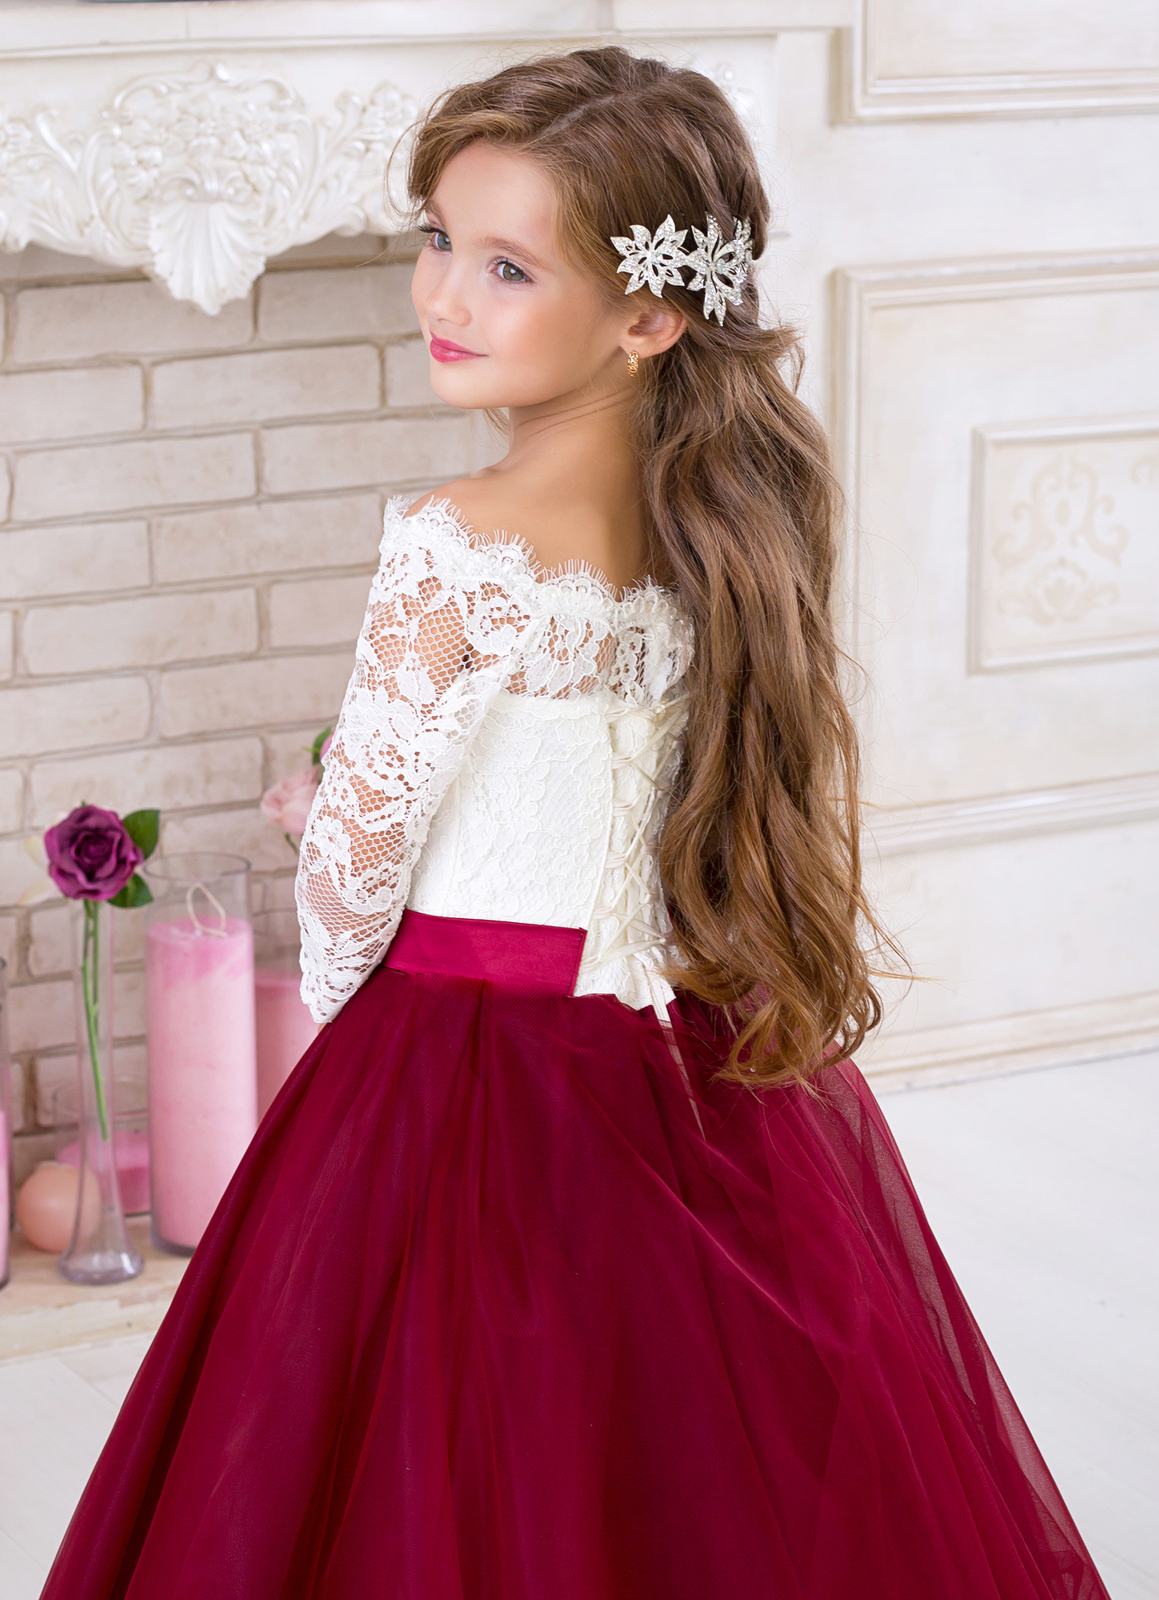 Rhinestones Beaded Tulle Flower Girls Long Dress Pageant Gown Wedding Party 5039